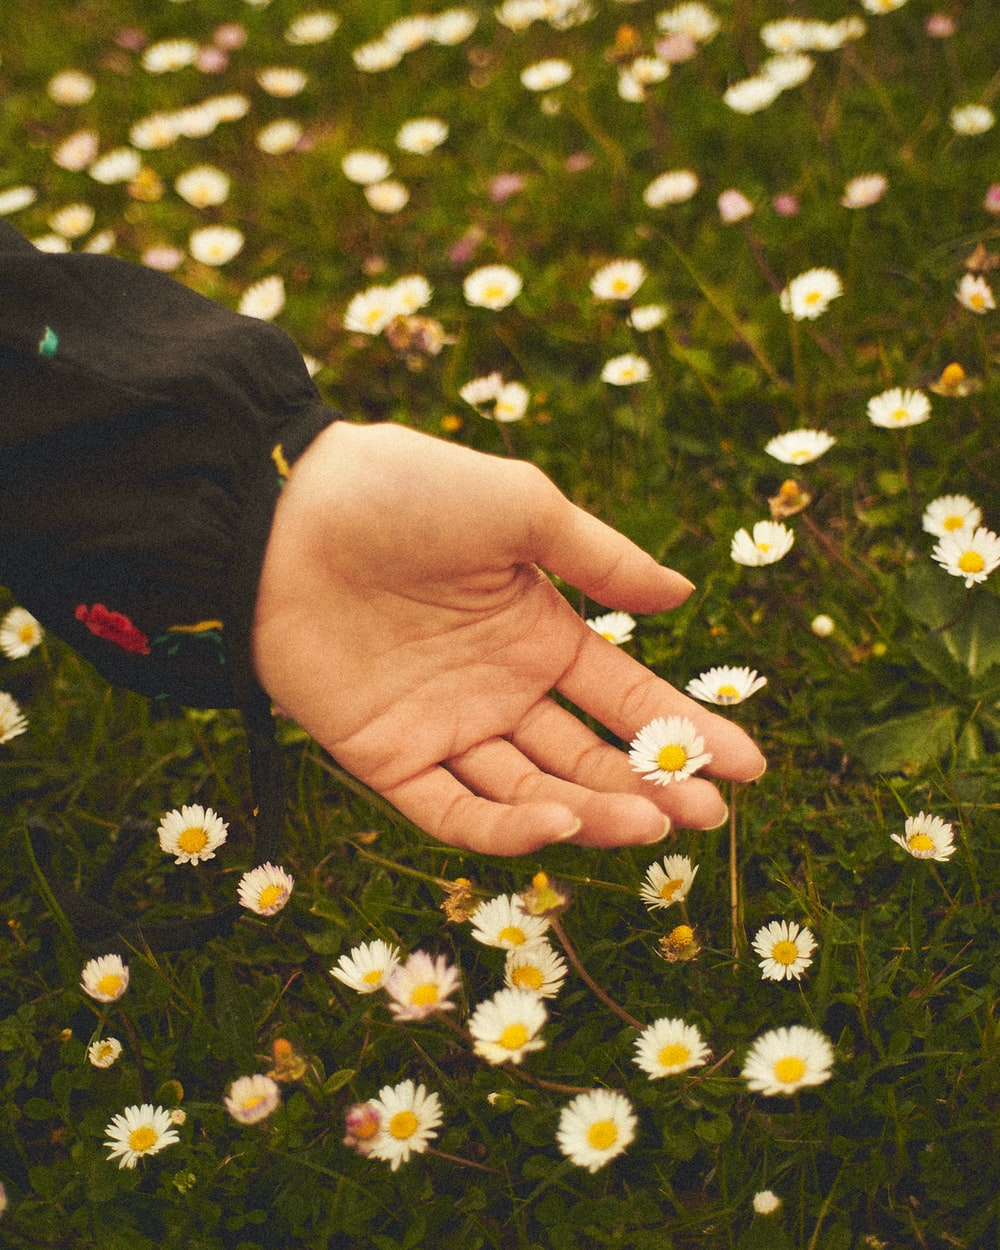 person holding white and yellow flower